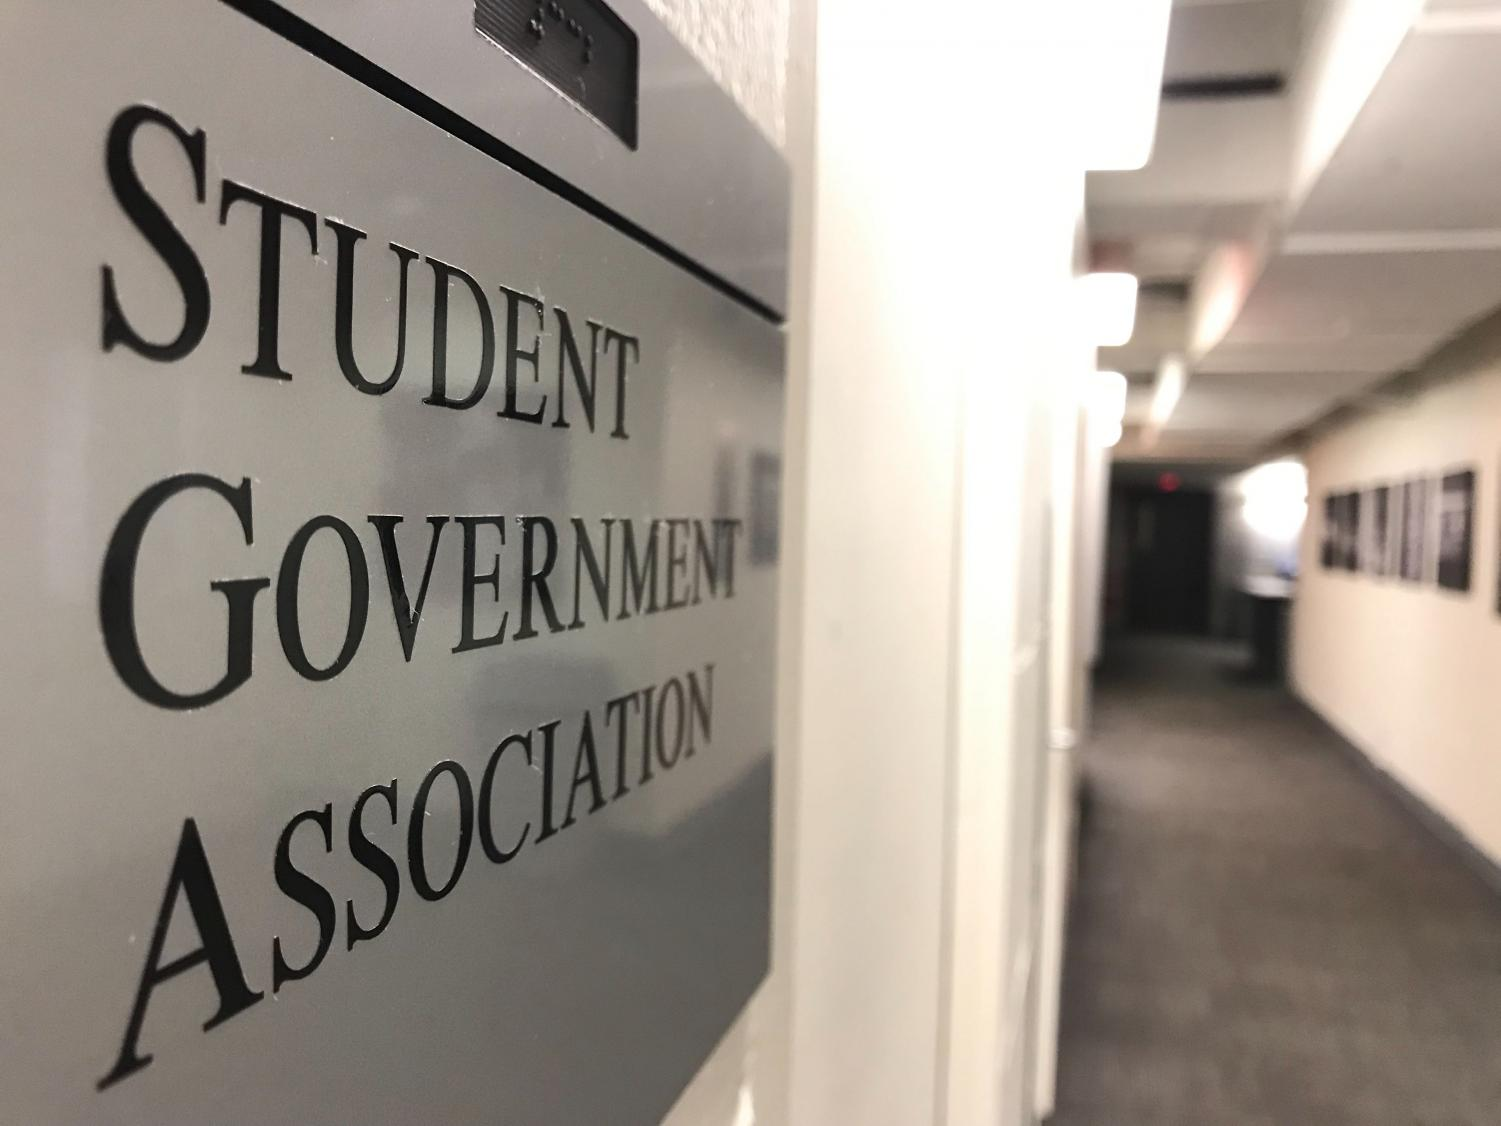 The Student Government Association office is located in 332 Curry Student Center.